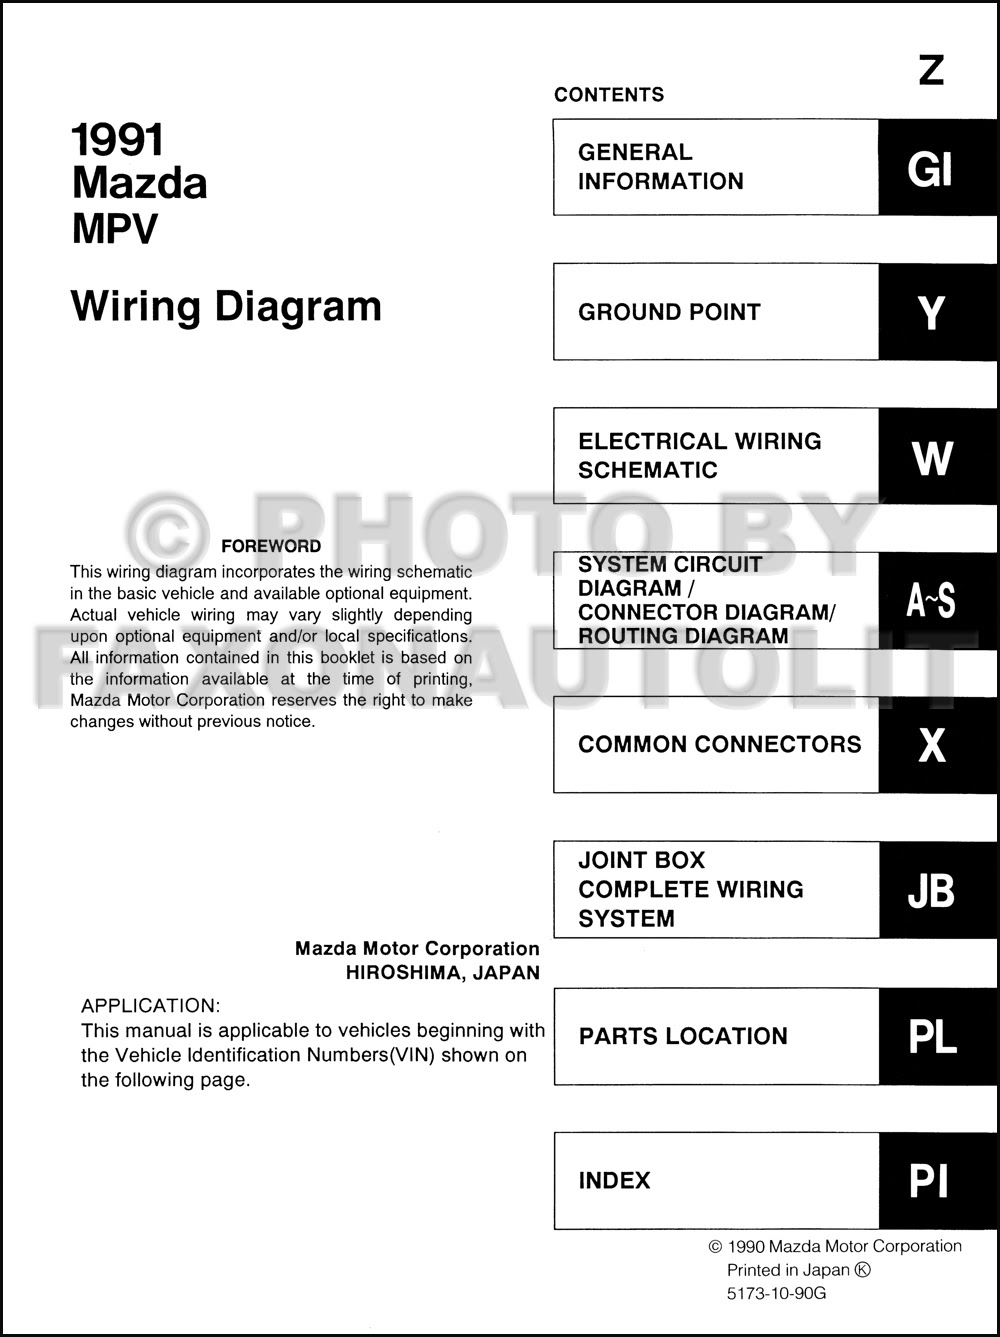 Diagram 1997 Mazda Mpv Wiring Diagram Manual Original Full Version Hd Quality Manual Original Diagramfeelye Gisbertovalori It